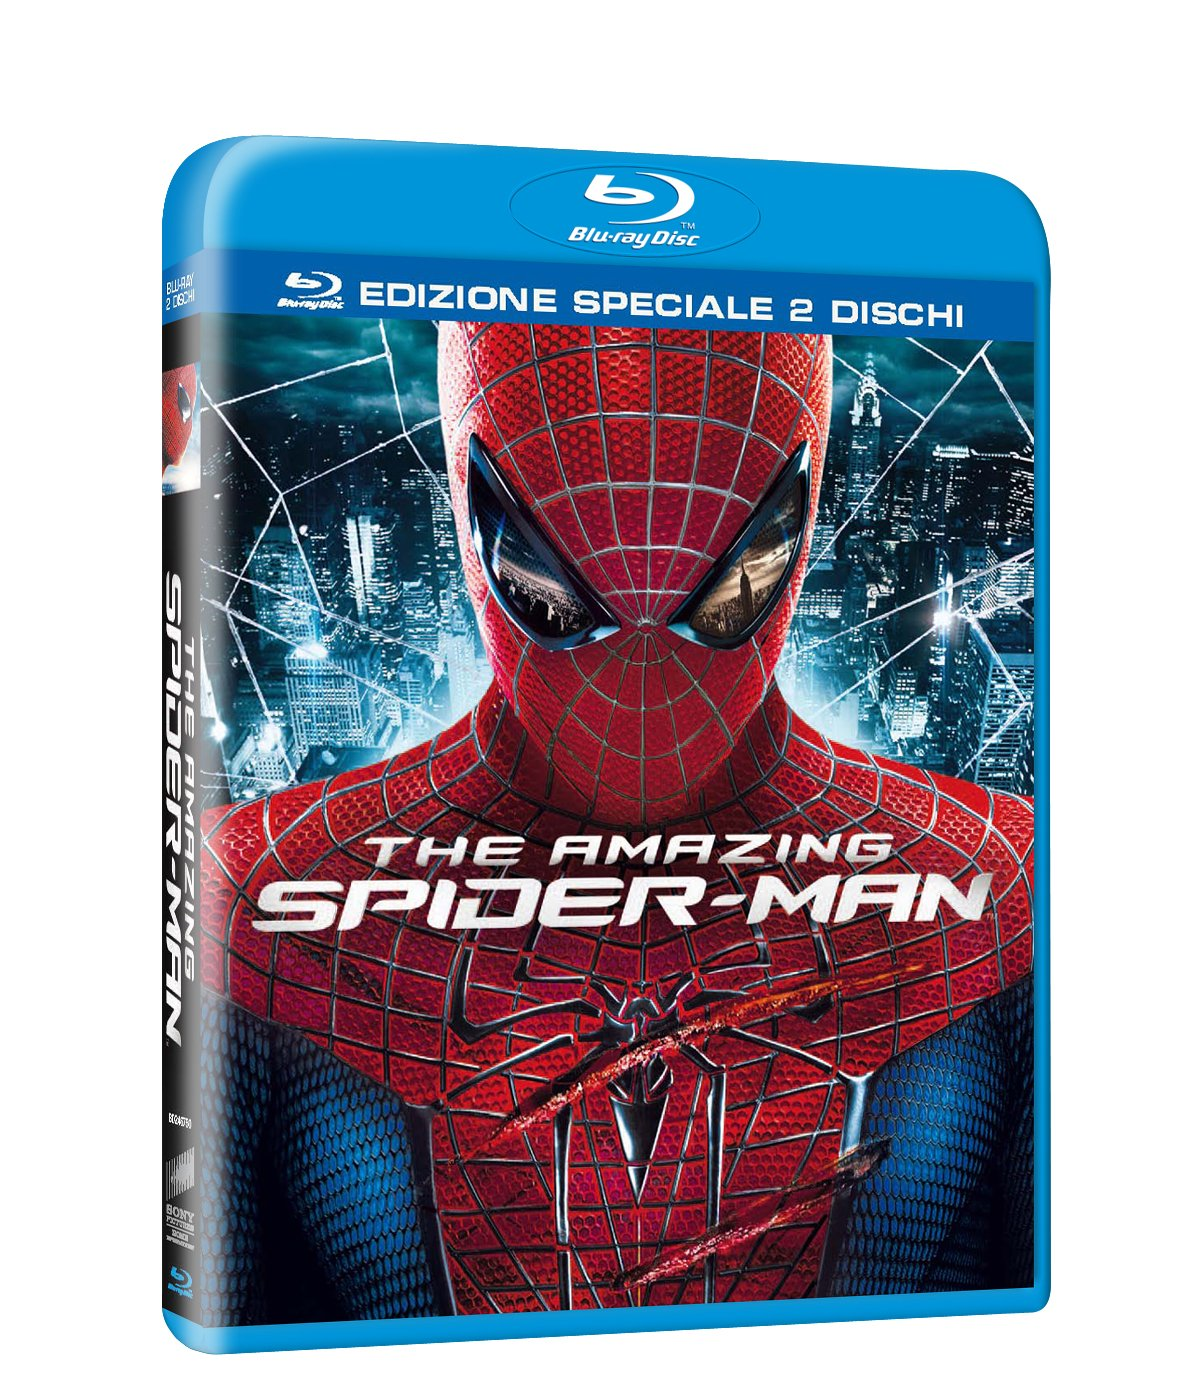 Amazing Spider-man blu-ray